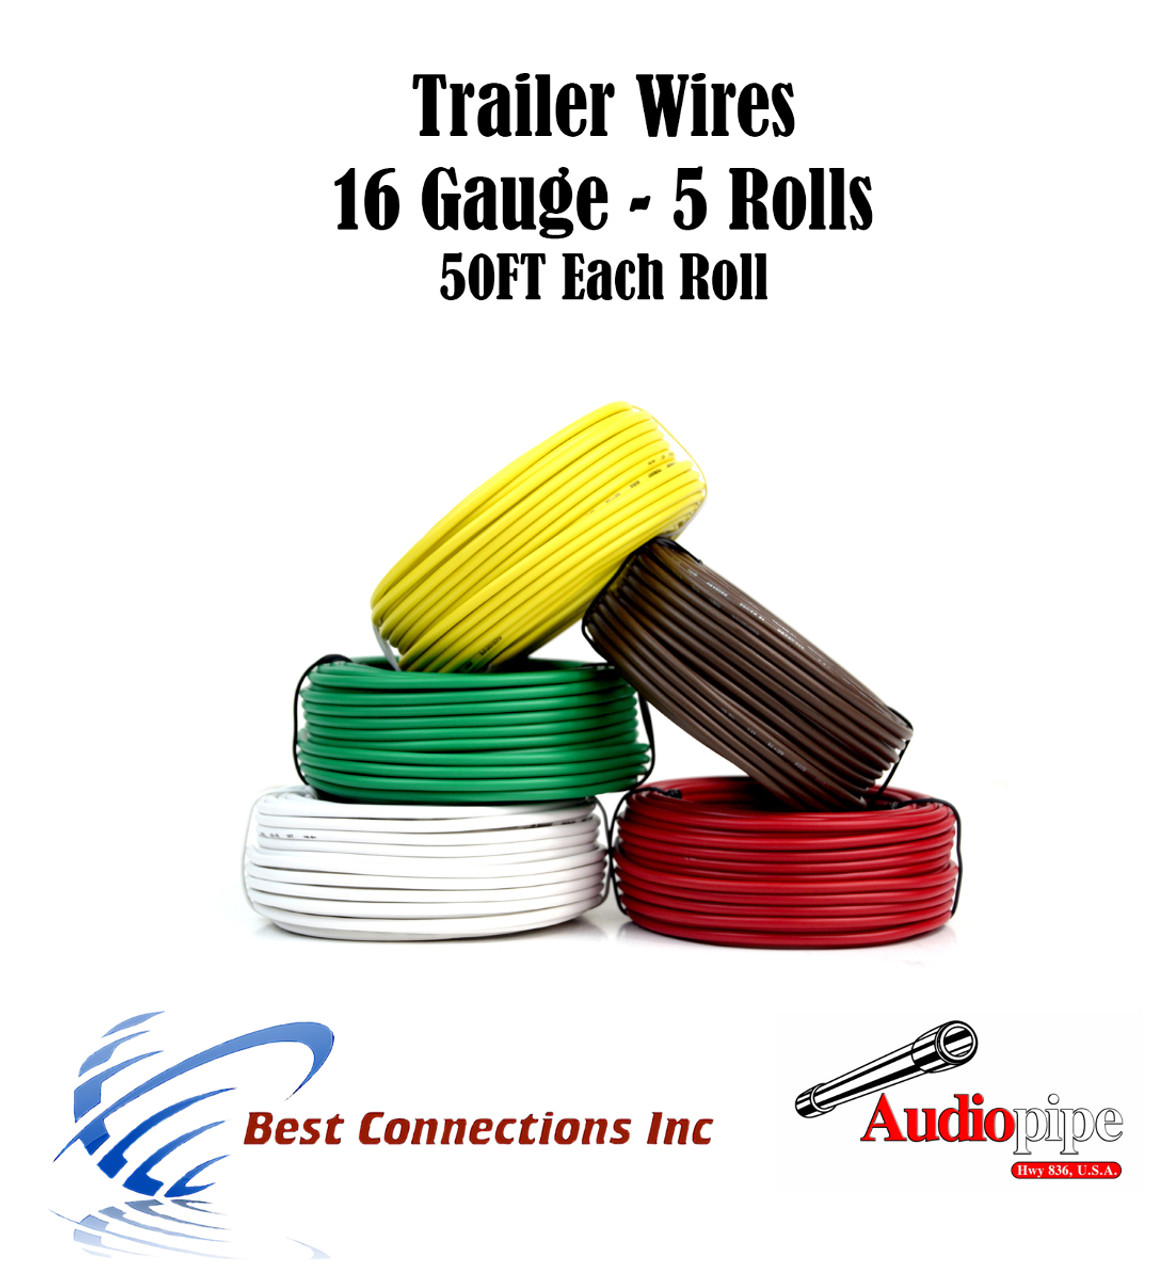 5 Way Trailer Wire Light Cable for Harness 50 FT Each Roll 16 Gauge  Wire Harness Gauge on 2 gauge wire, 8 gauge wire, 20 gauge wire, 10 gauge wire, 9 gauge wire, 28 gauge wire, 0 gauge power wire, 16 wheel wire, copper wire, 14 gauge wire, 4 gauge wire, automotive wire, 18 gauge wire, speaker wire, 1 gauge wire, 32 gauge wire, 15 gauge wire, 6 gauge wire, heavy gauge wire, 40 gauge wire,